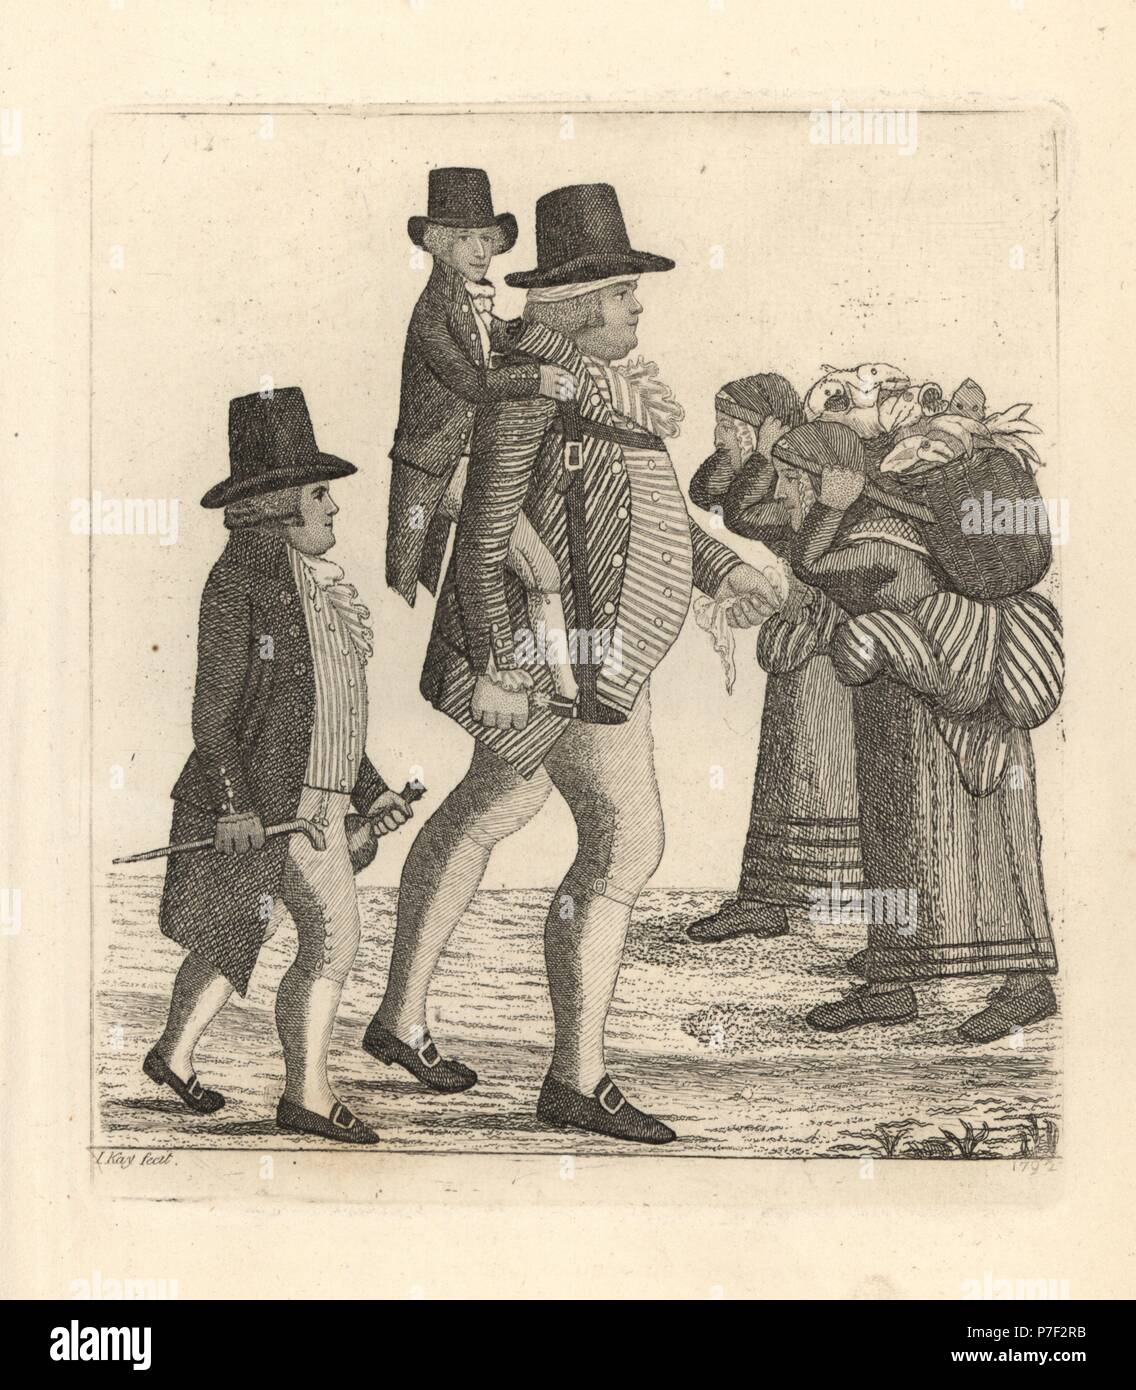 Hamilton Bell carrying a vintner's boy from Edinburgh to Musselbough accompanied by John Rae, as part of a bet. Copperplate engraving by John Kay from A Series of Original Portraits and Caricature Etchings, Hugh Paton, Edinburgh, 1842. - Stock Image